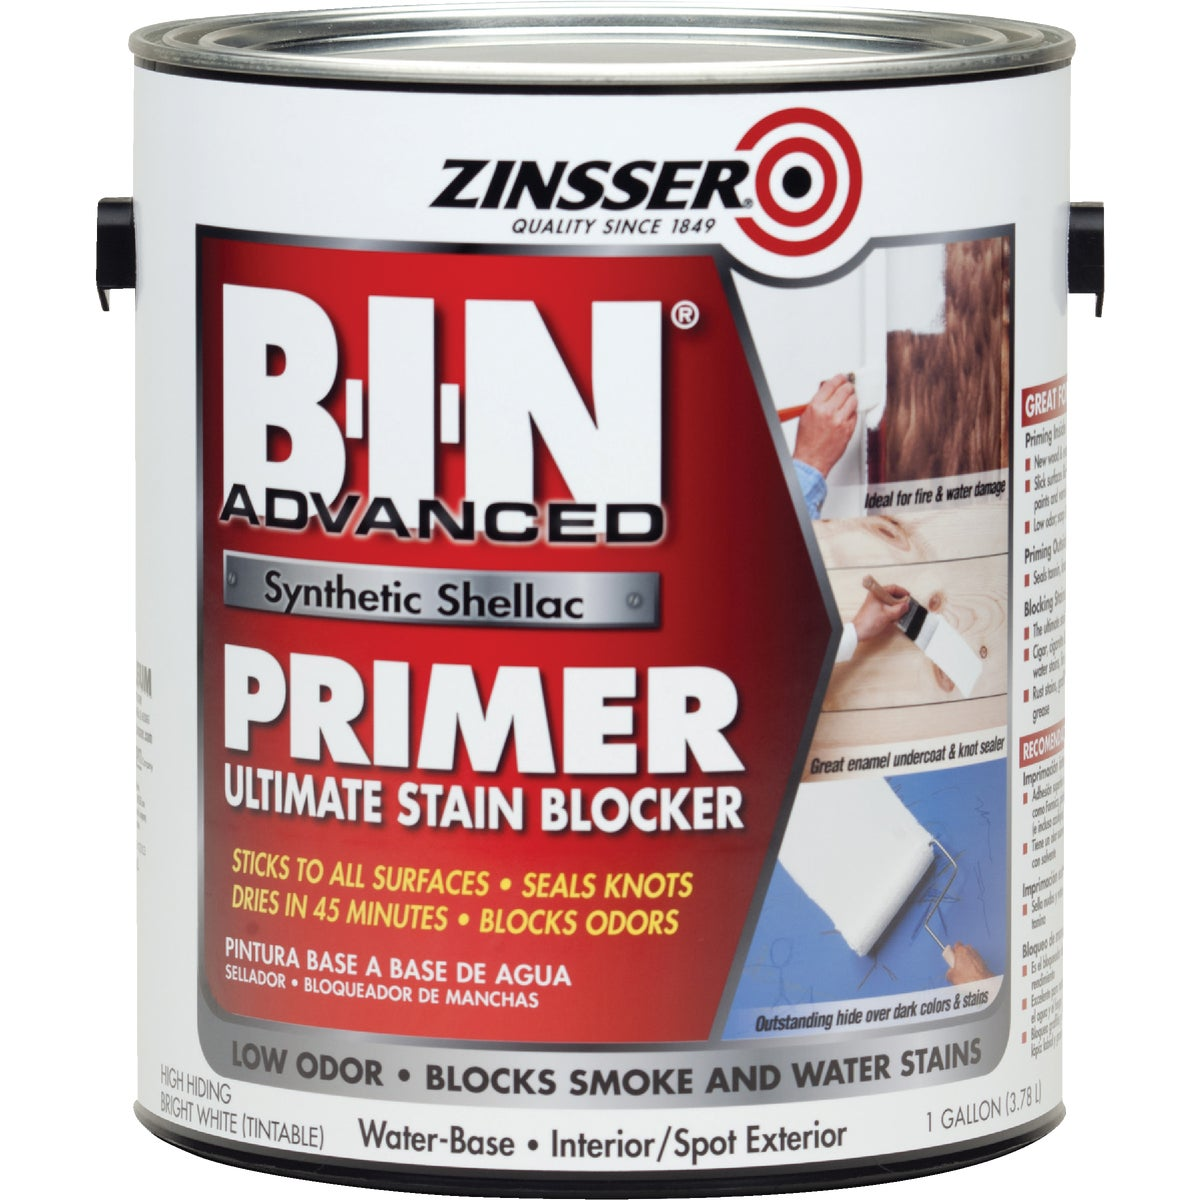 BIN ADVANCED PRIMER - 270976 by Rustoleum